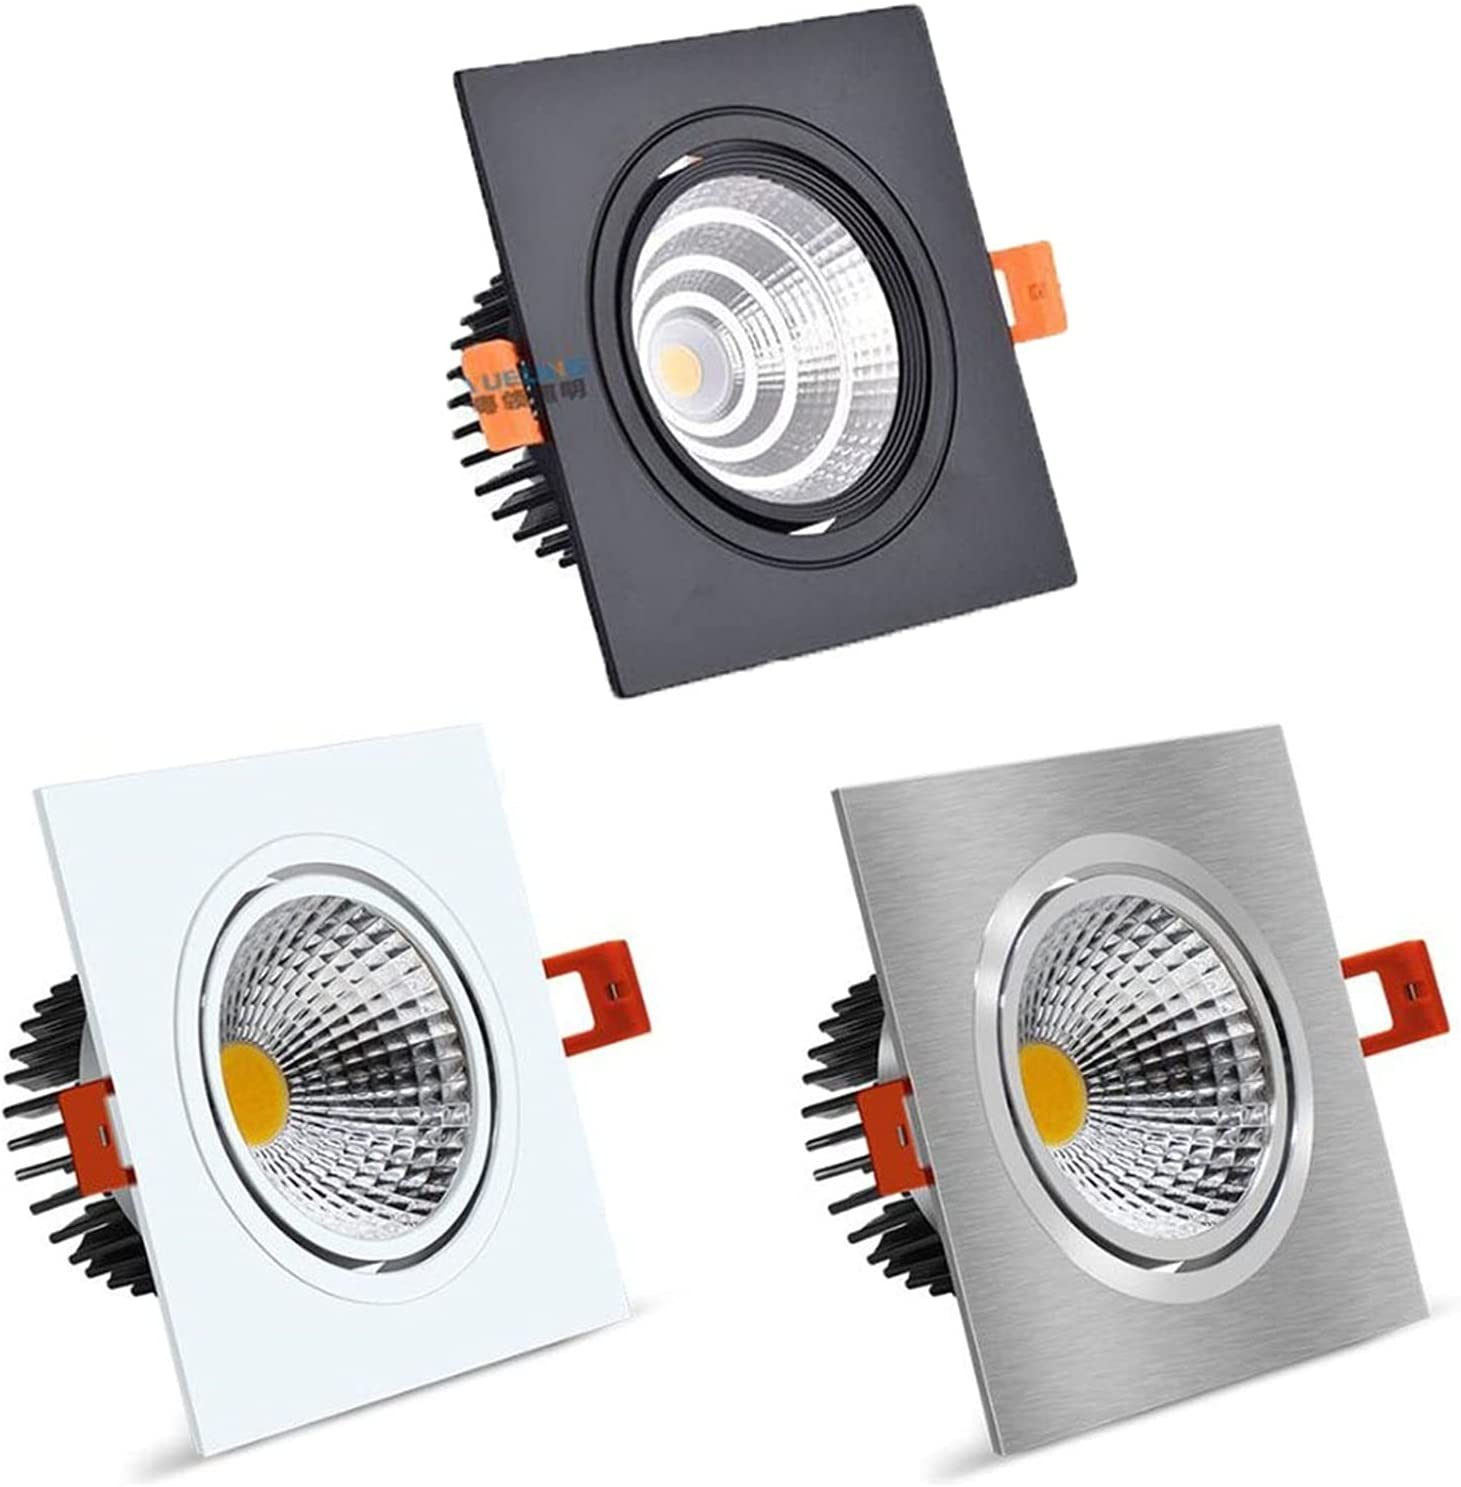 YSJJJBR Downlights Installation Square Dimmable LED Boston Mall 7 Recommendation